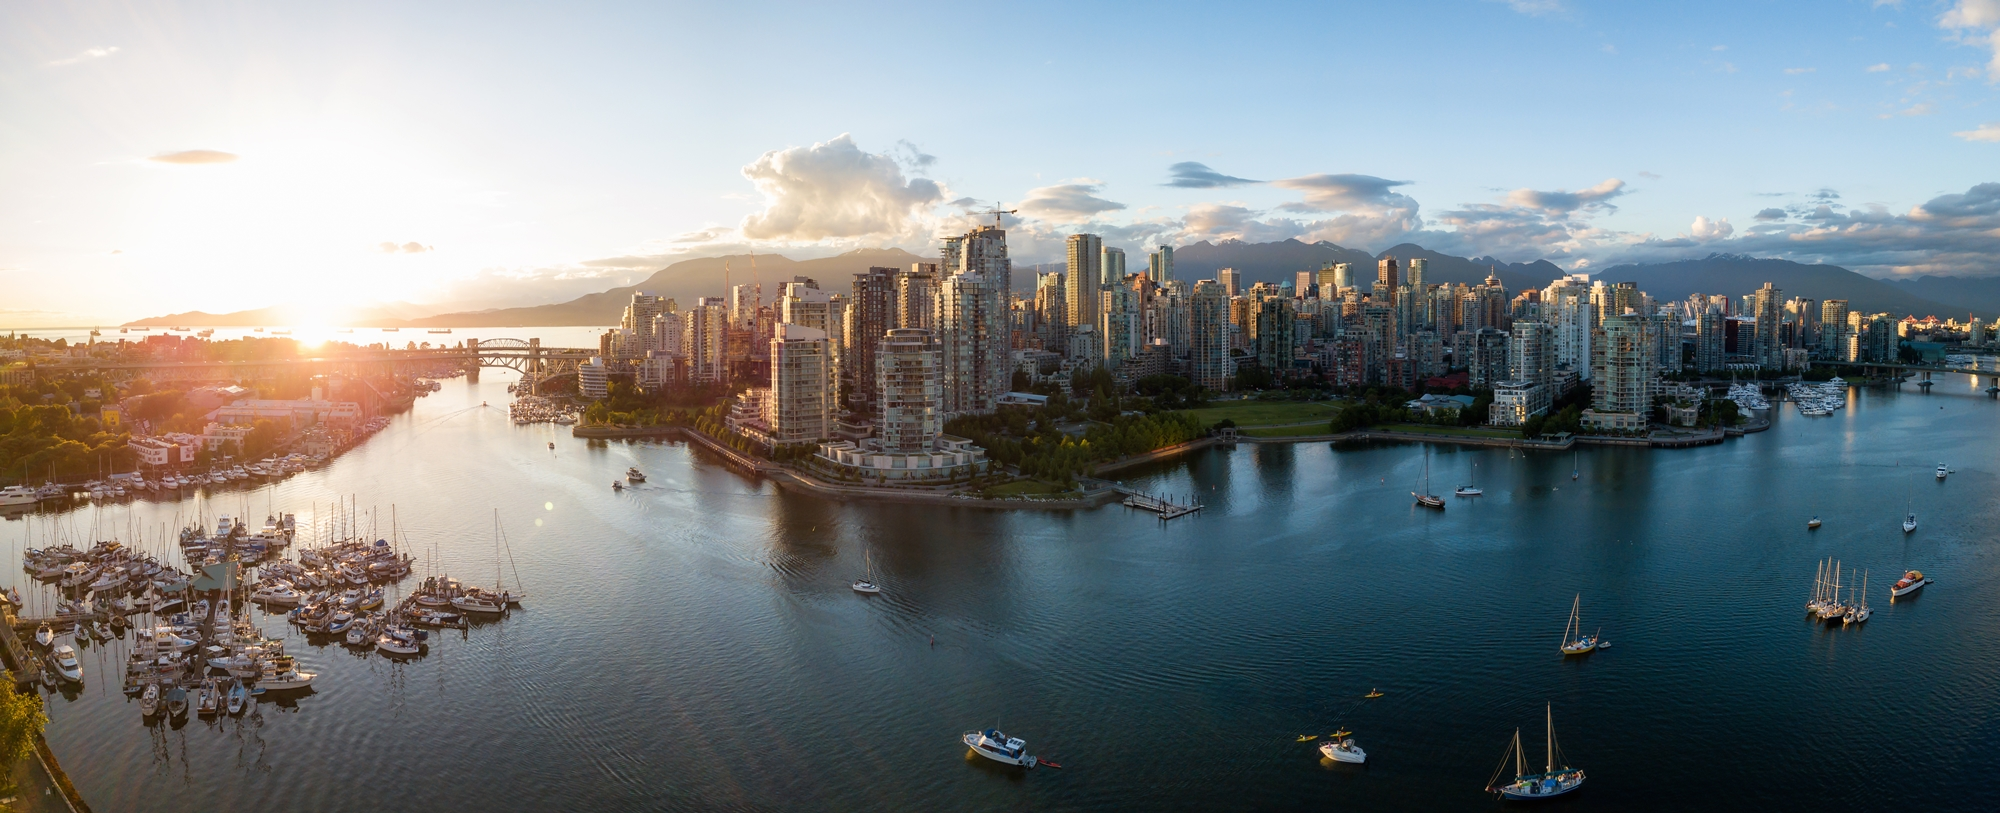 WHAT TO DO WITH 24 HOURS IN VANCOUVER